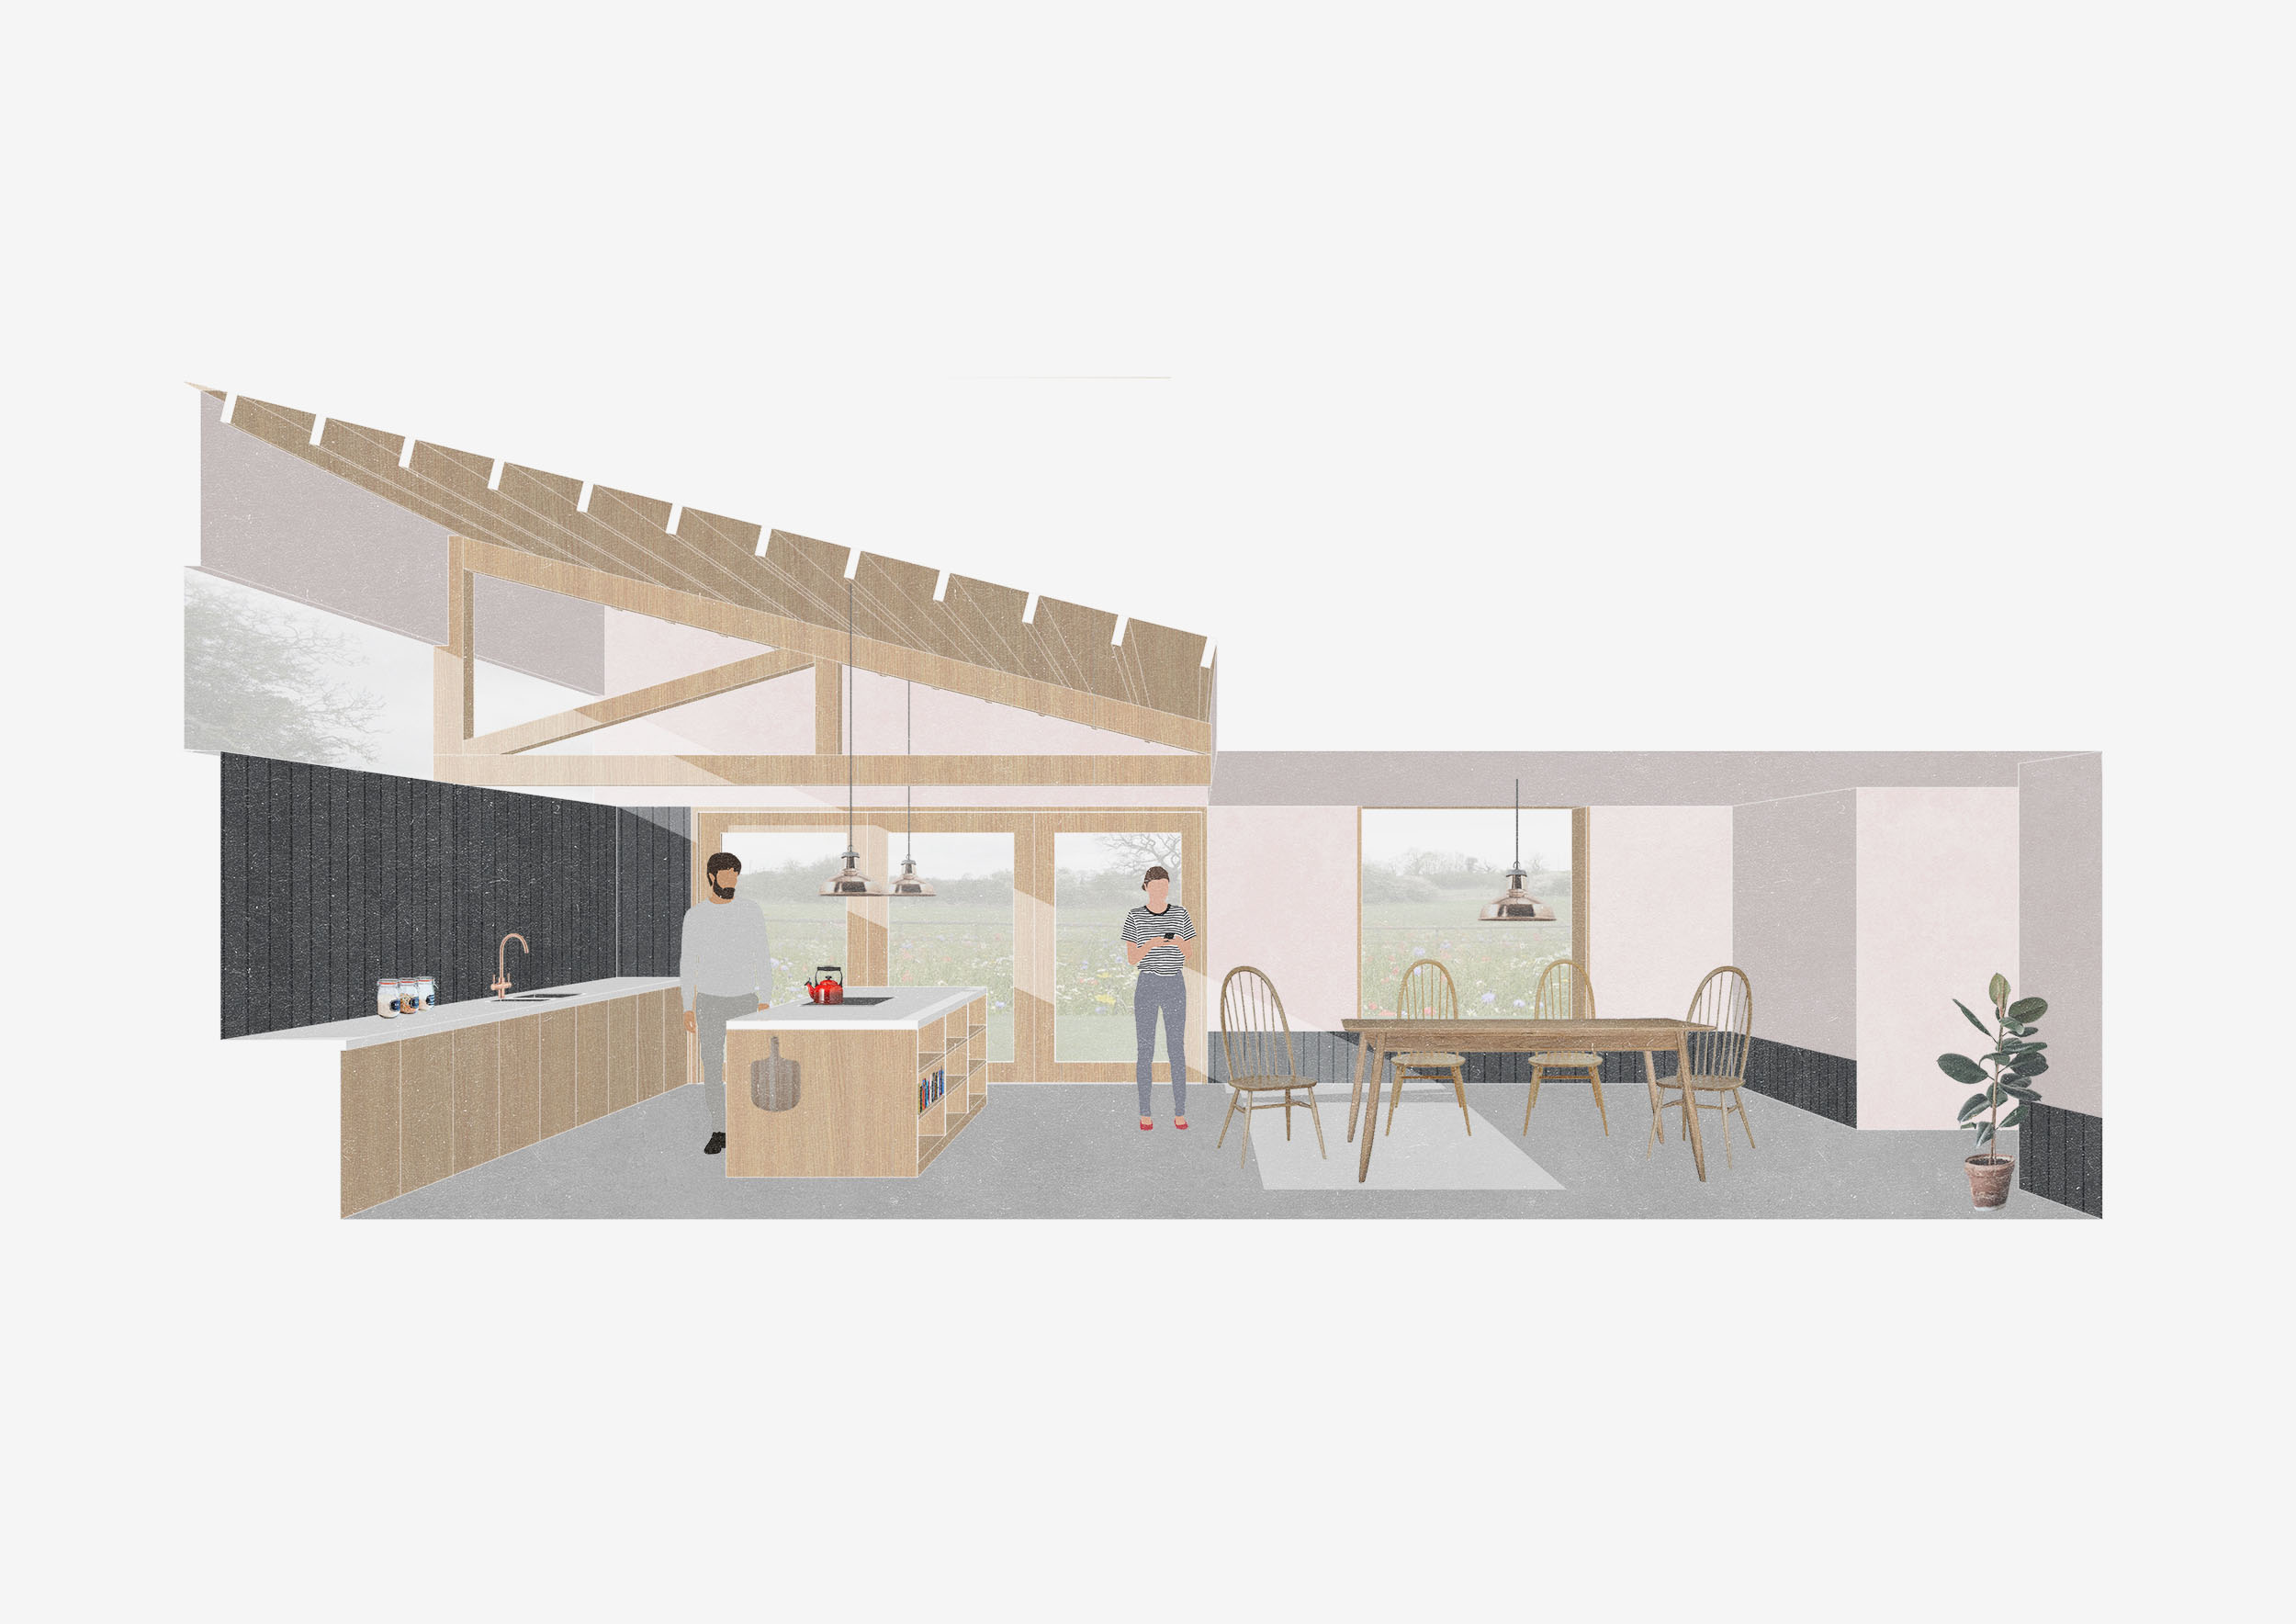 Contemporary and sustainable kitchen extension in Feckenham, Worcestershire